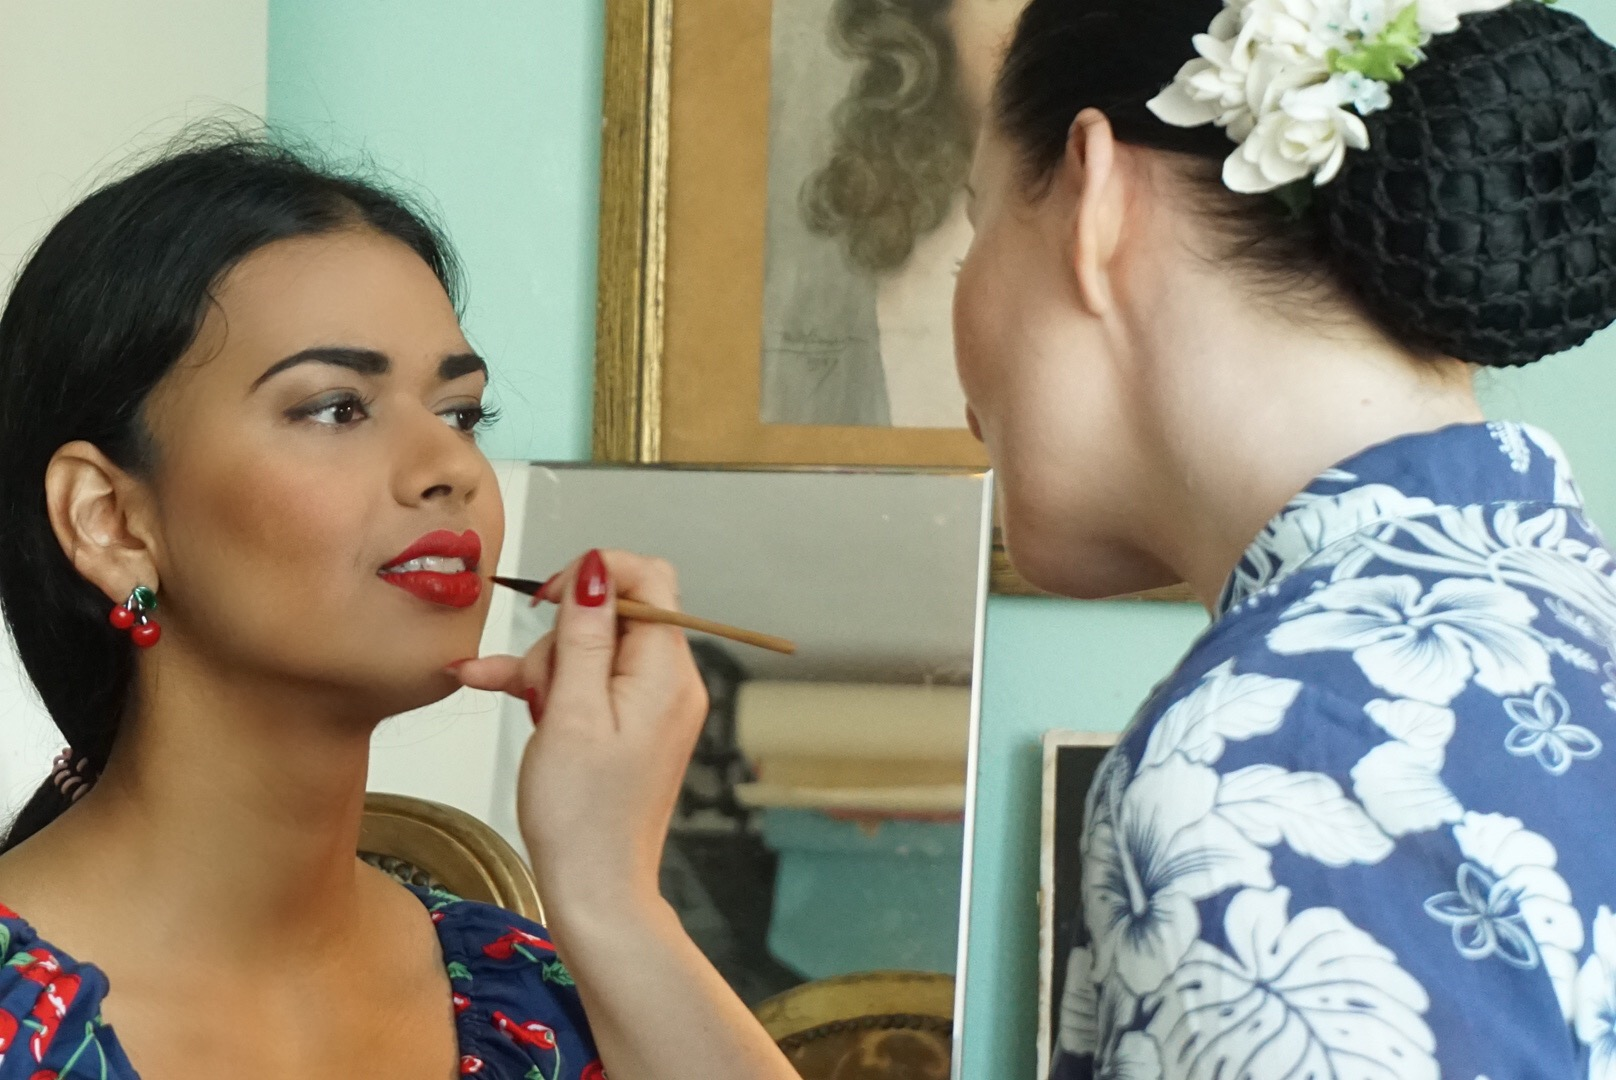 Behind the scenes vintage photoshoot - vintage makeup